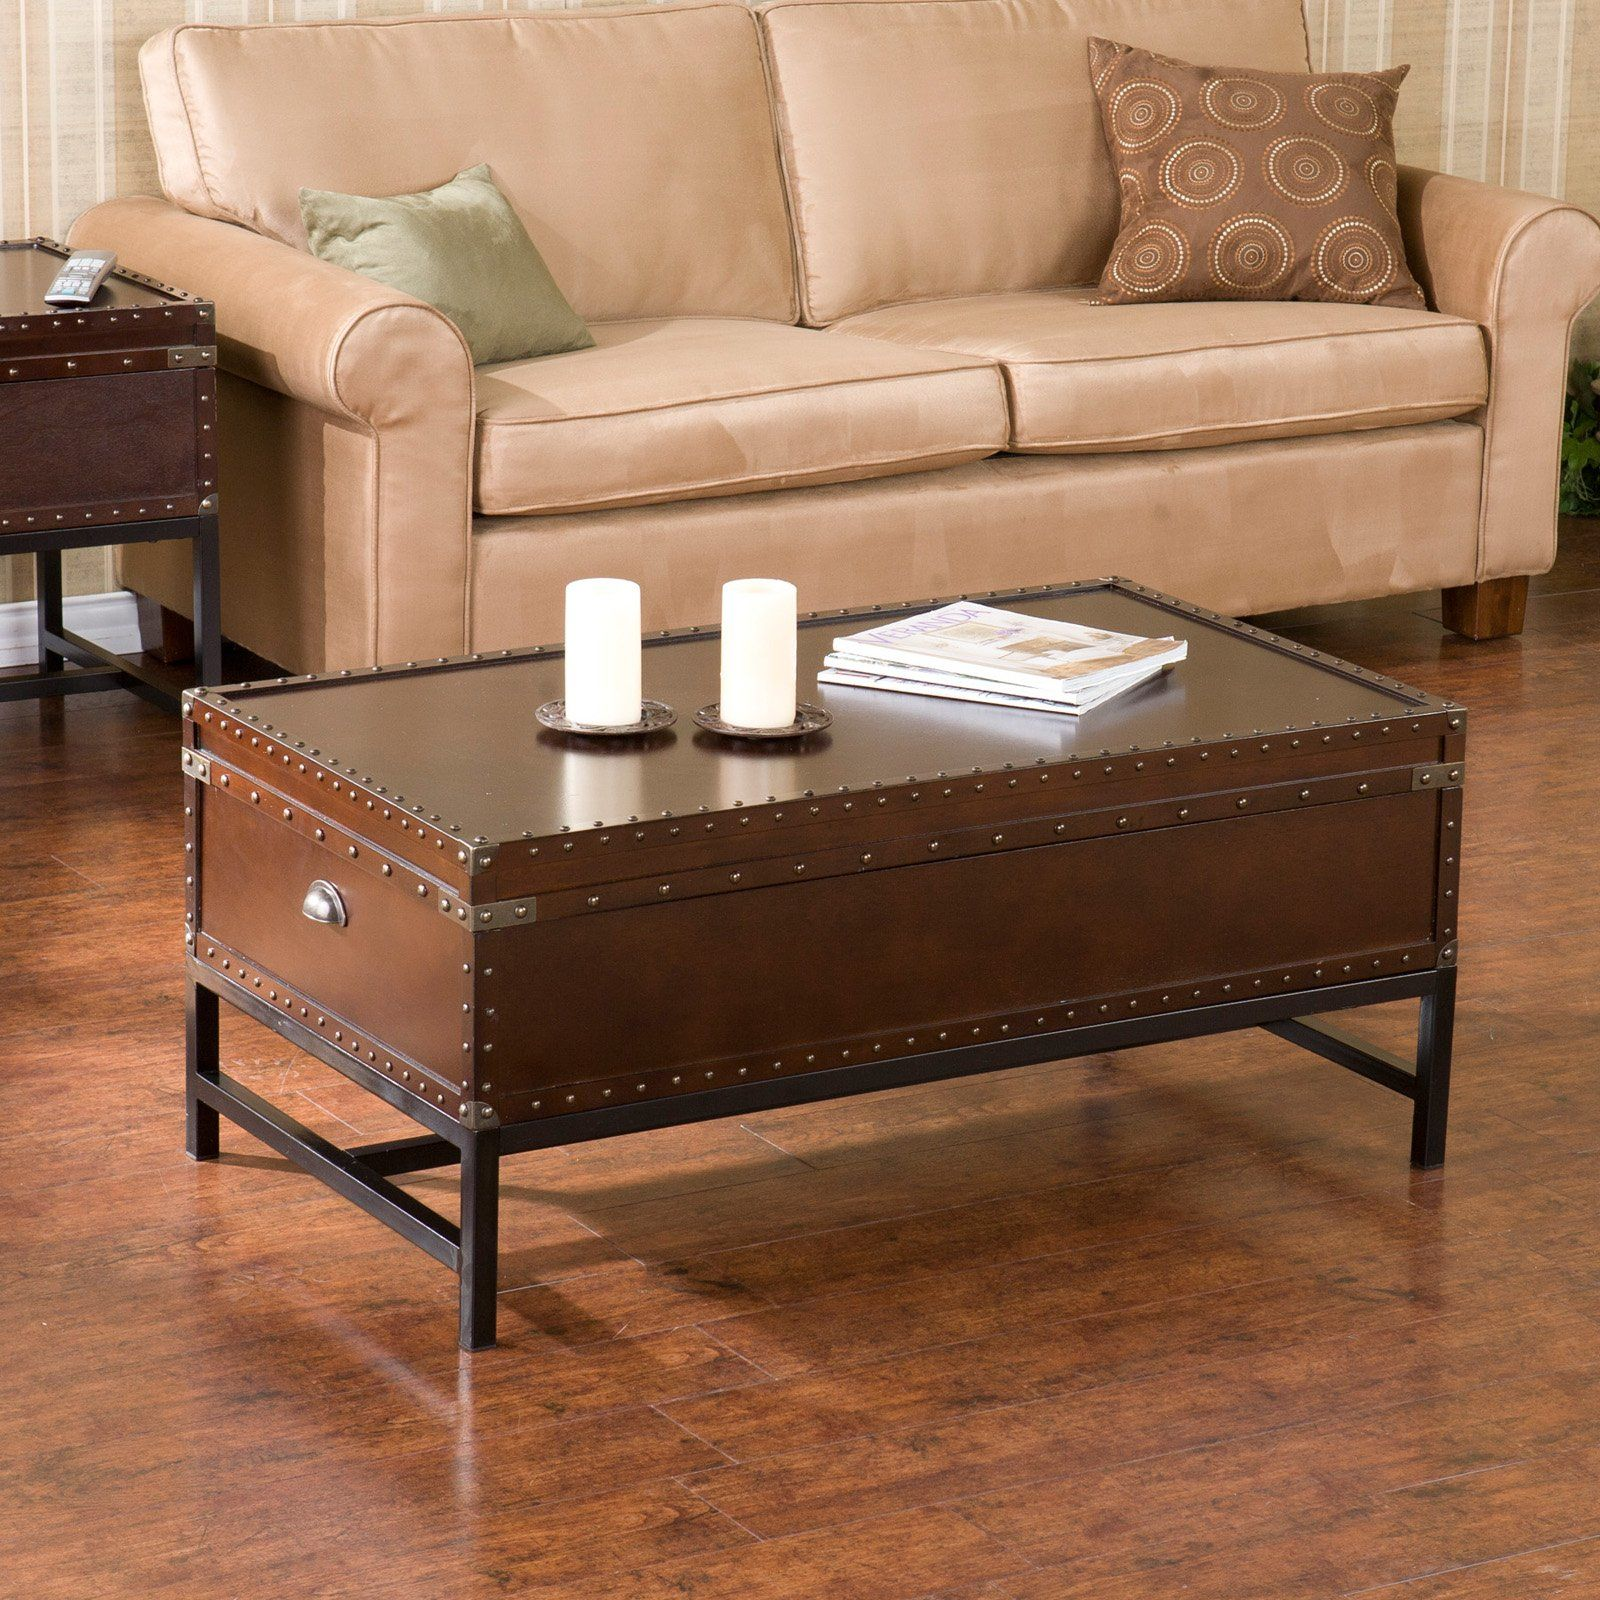 Southern Enterprises Voyager Espresso Trunk Coffee Table Coffee Table Coffee Table Trunk Coffee Table With Storage [ 1600 x 1600 Pixel ]